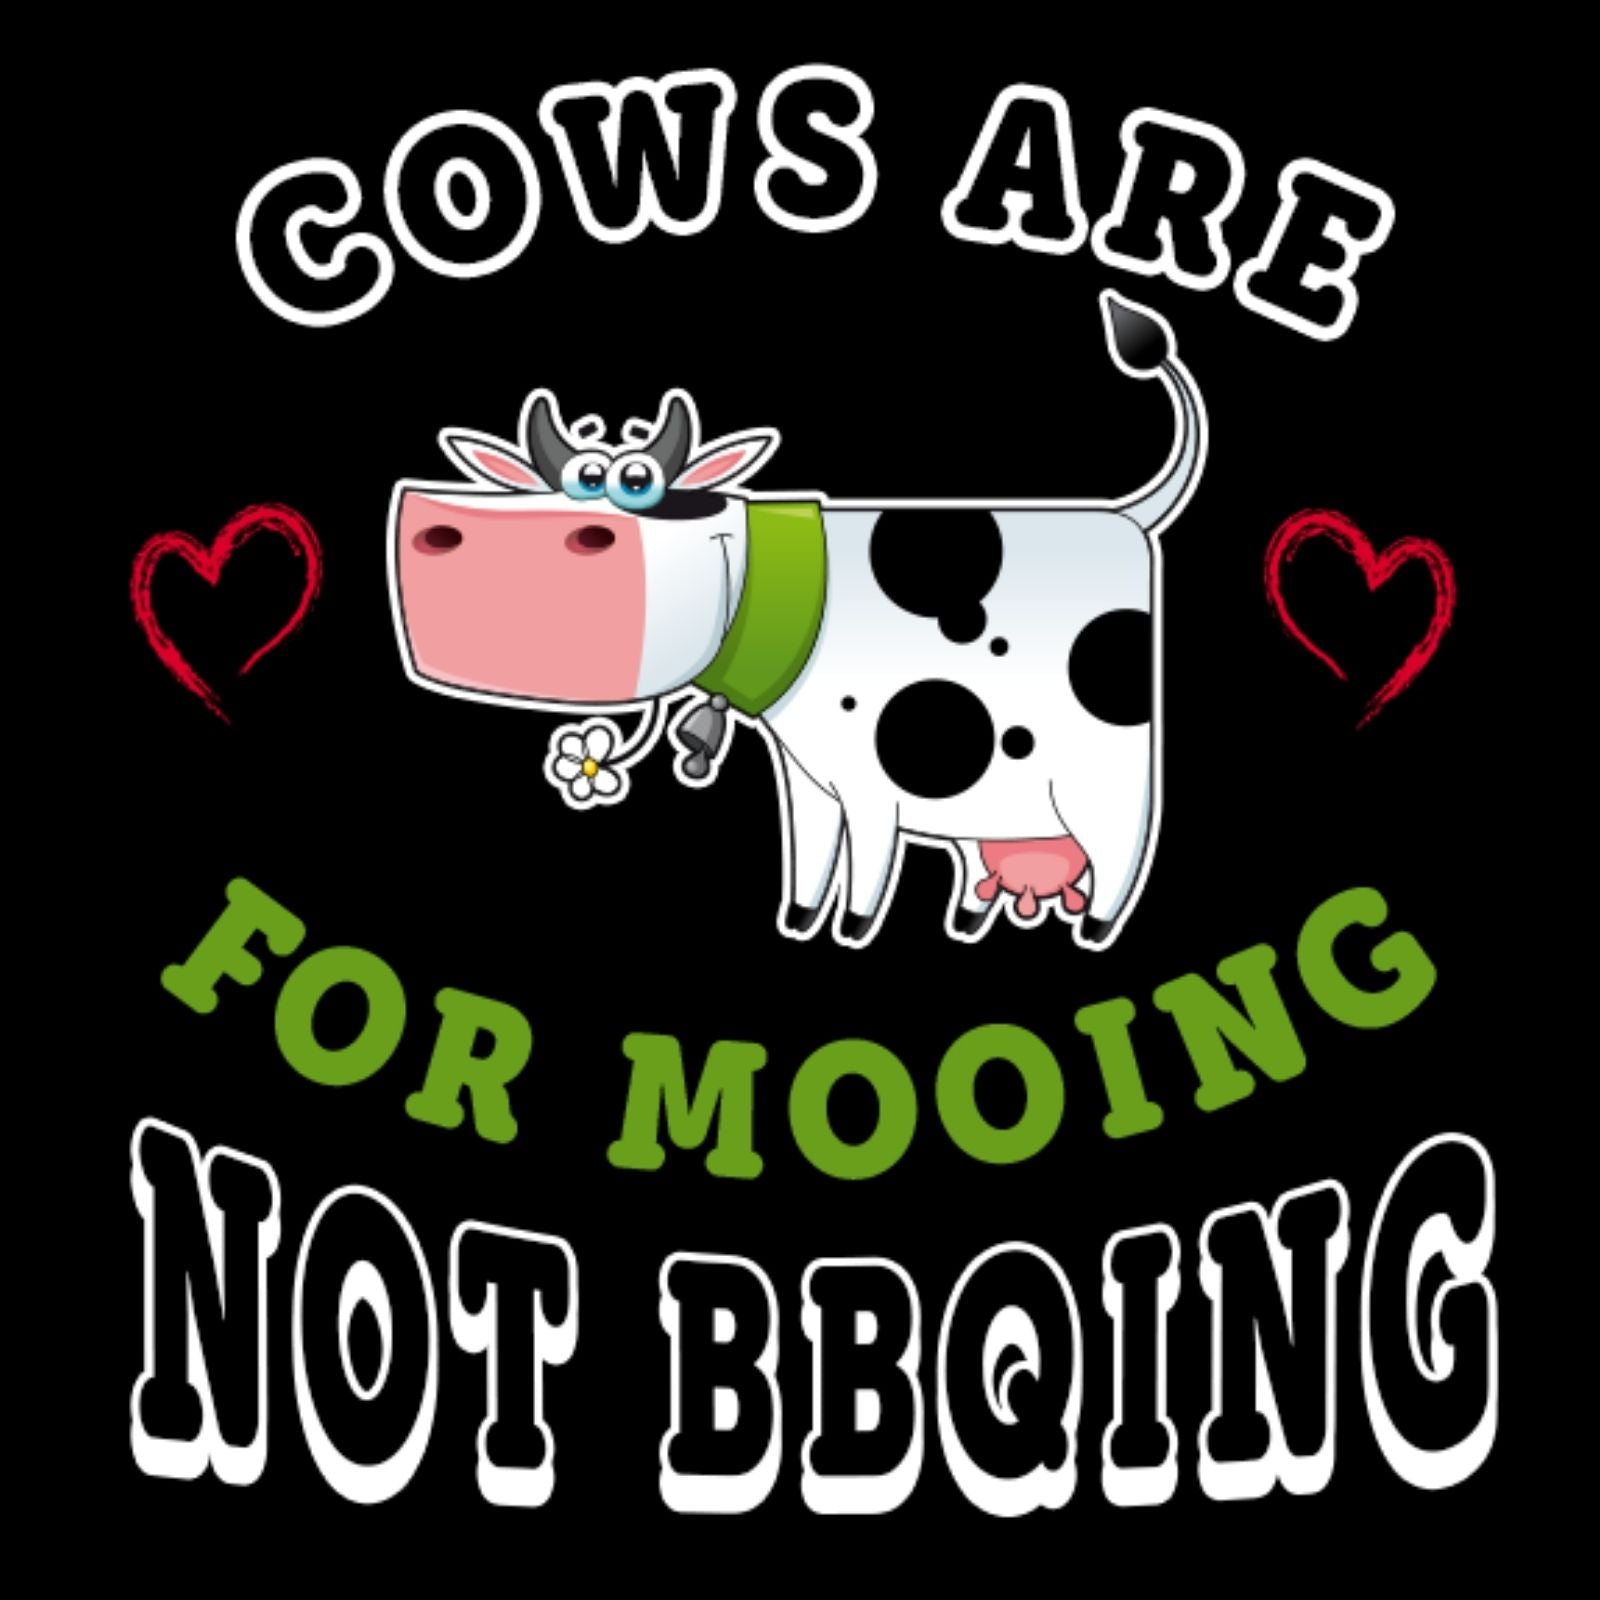 Cows Are For Mooing Not BBquing - Bastard Graphics